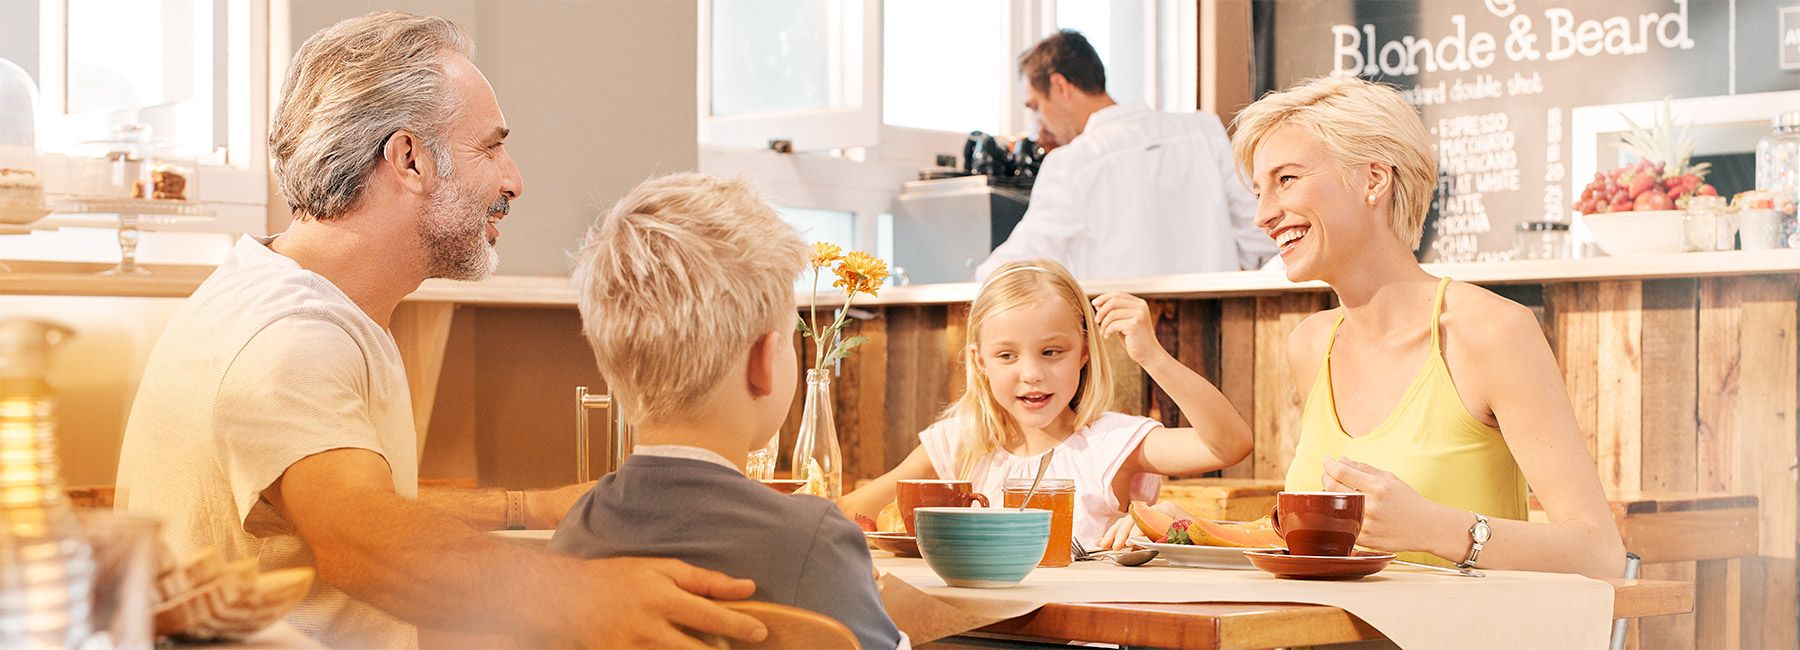 primax-situation-1_family-breakfast_1800x650px